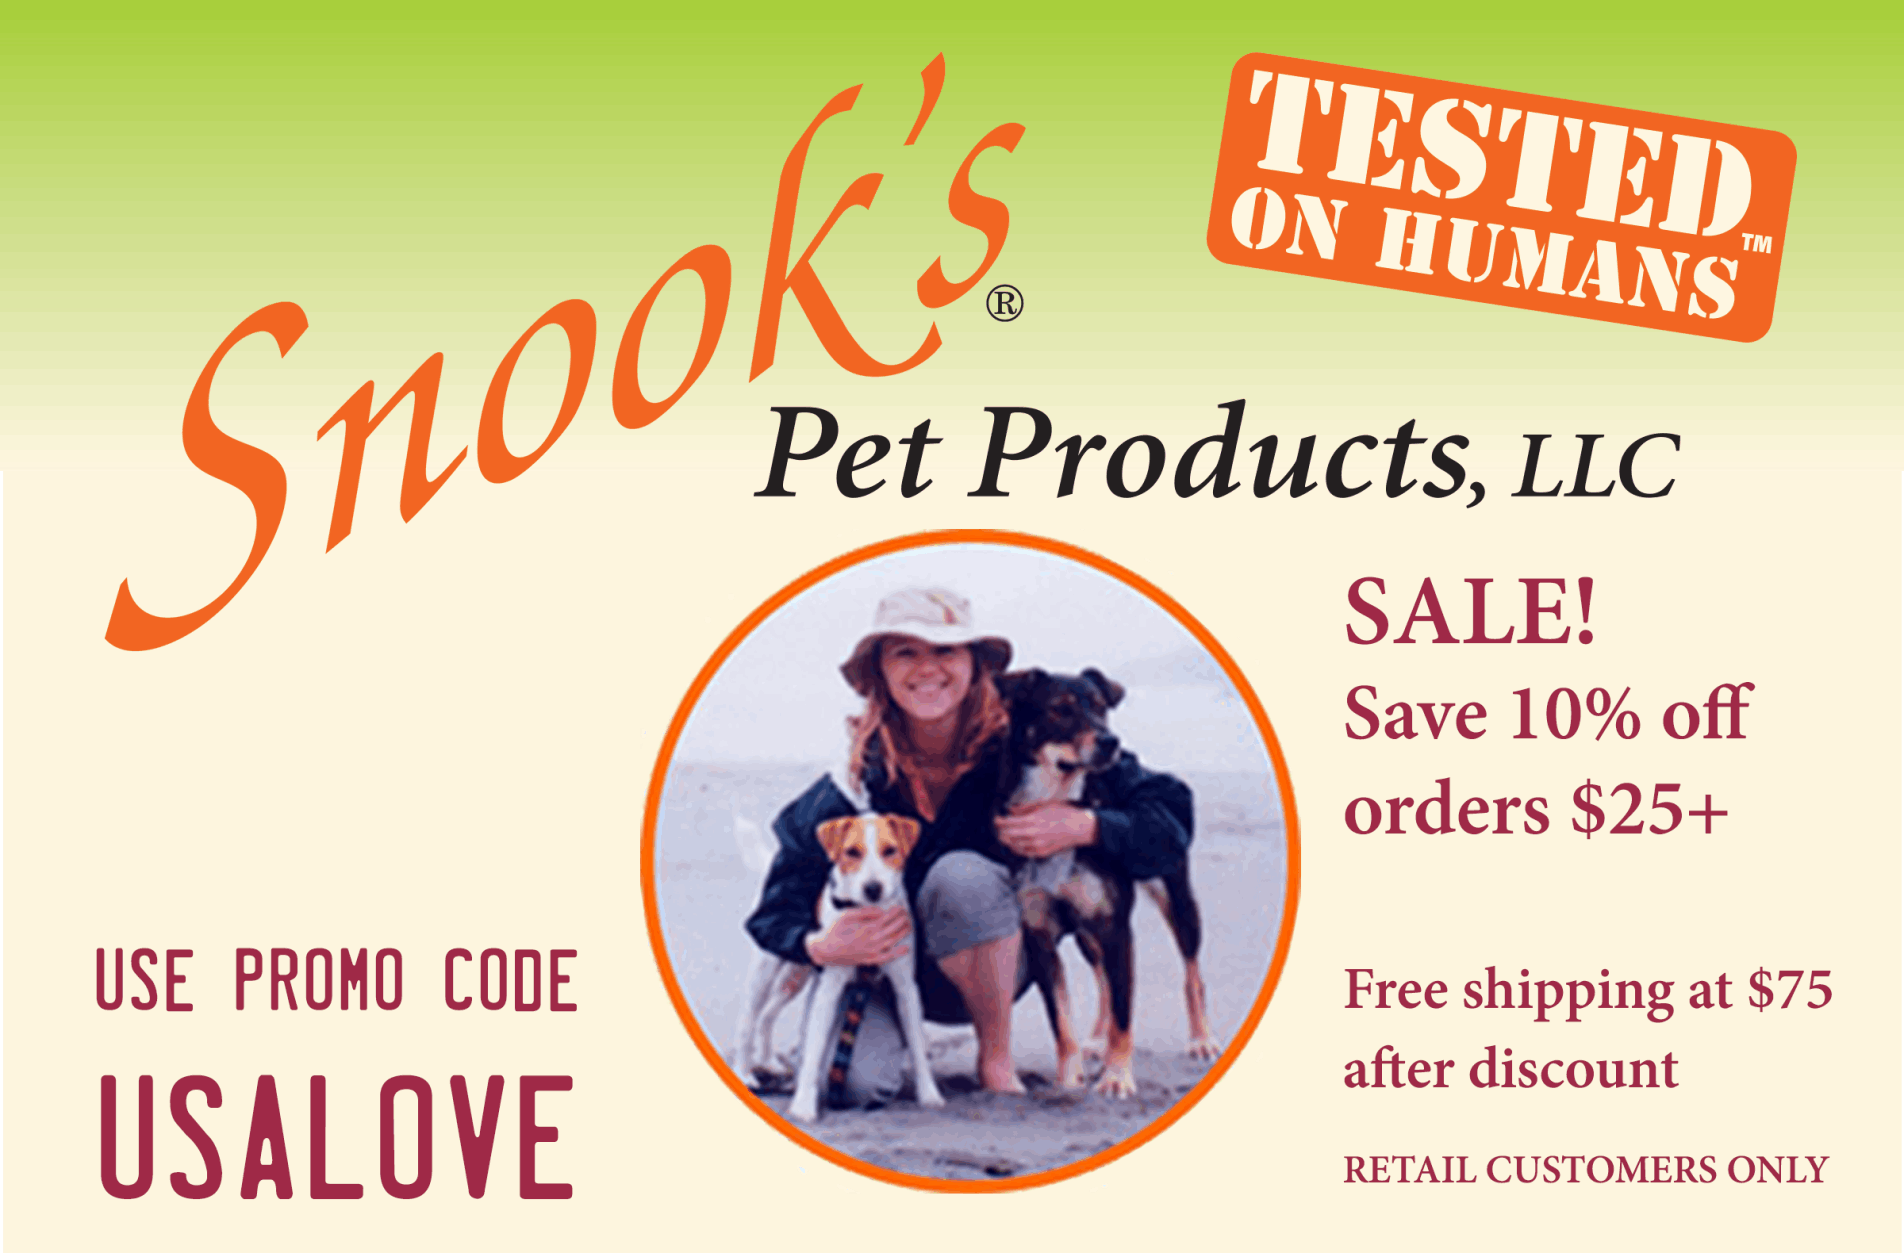 Snook's USA LOVE Special - Save Now